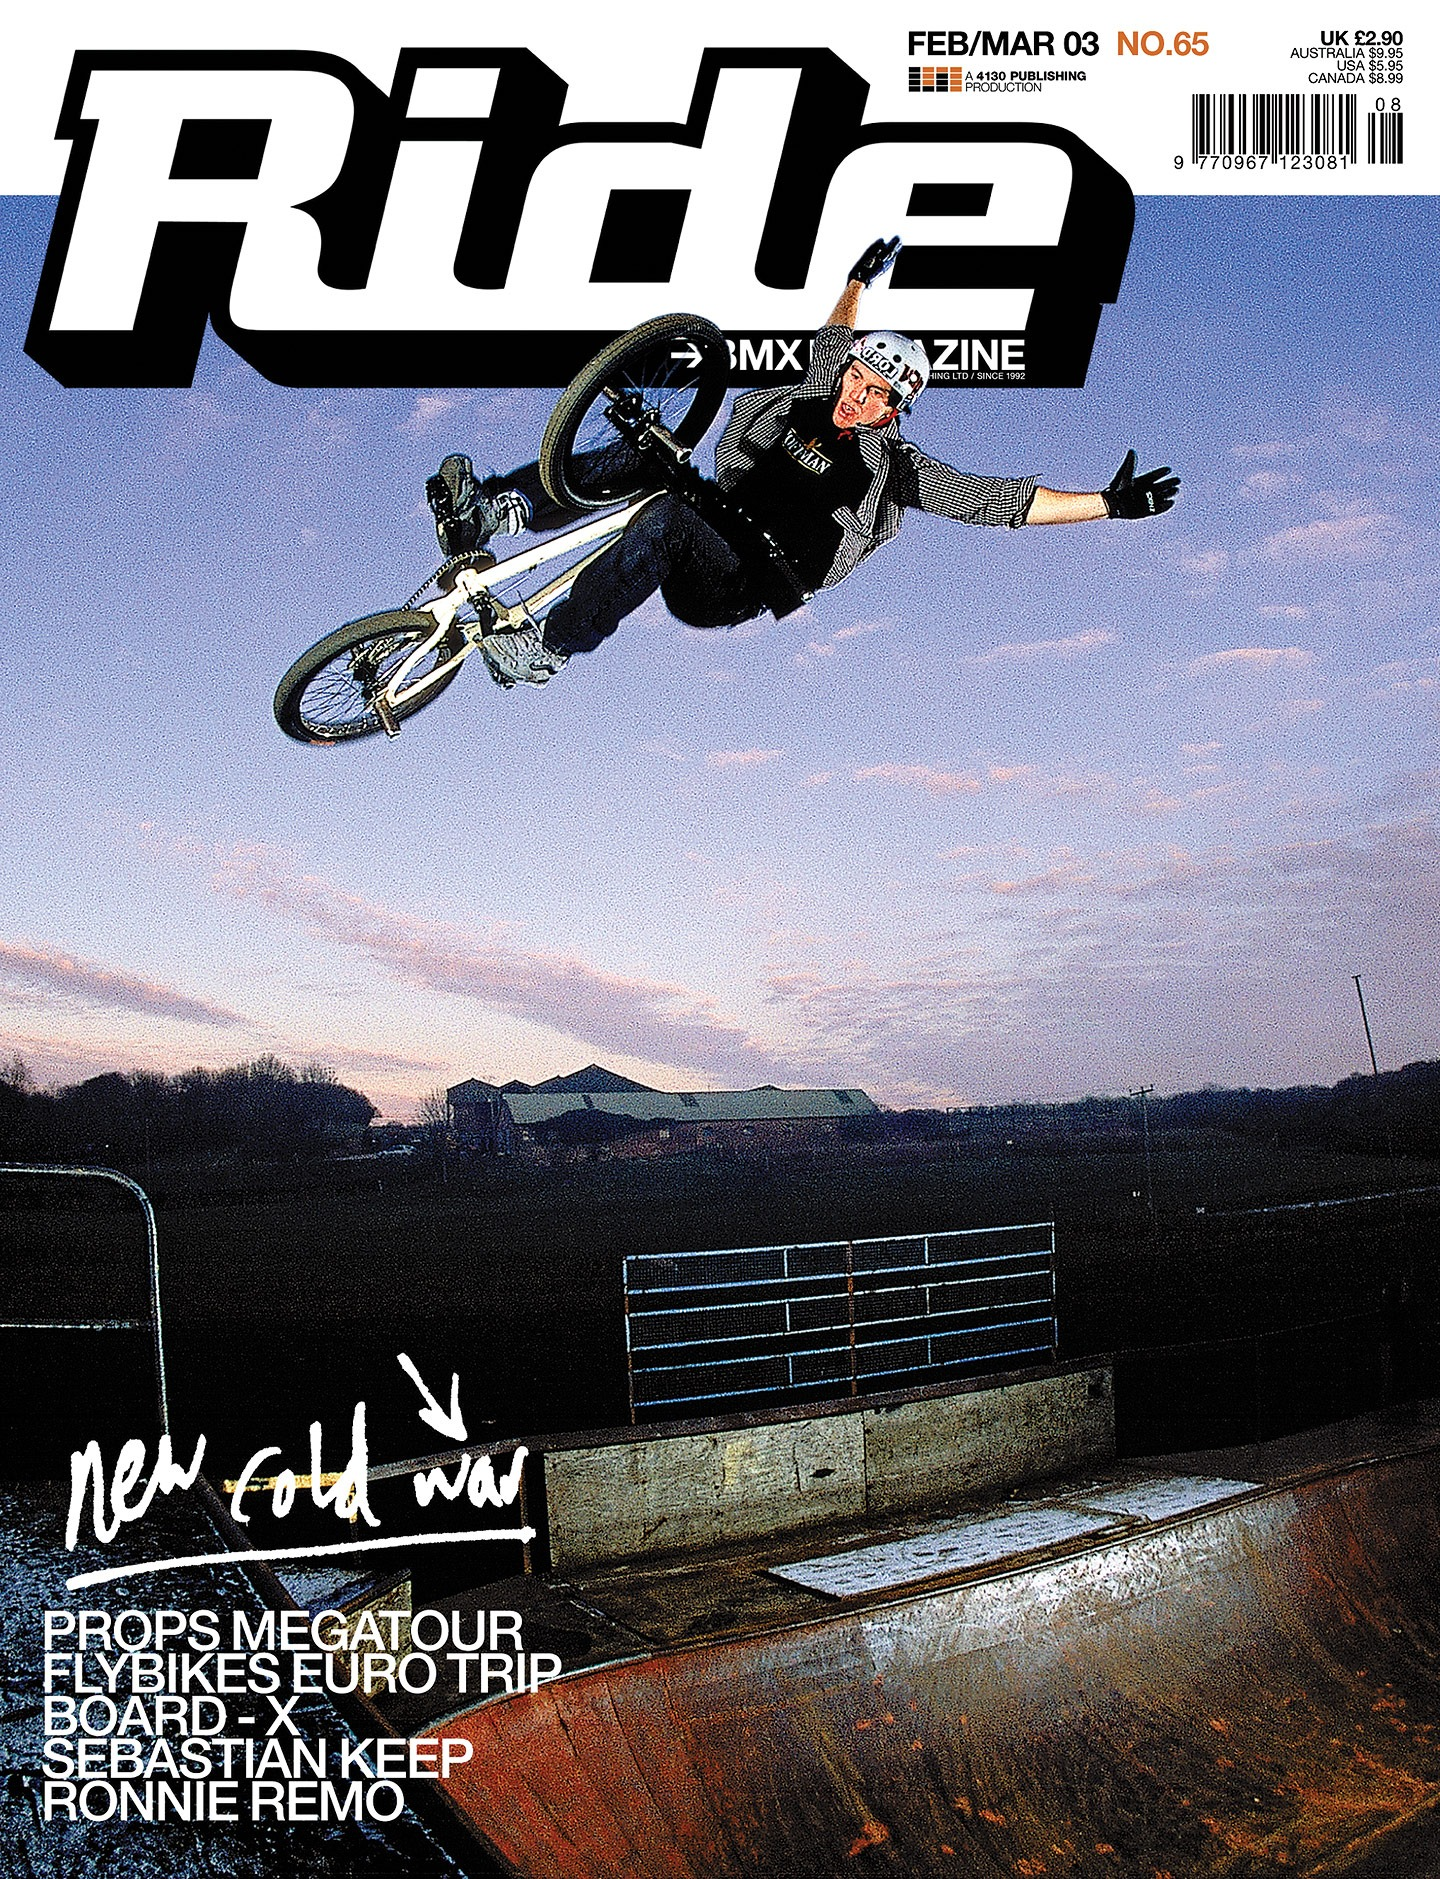 Bas Keep Ride UK Cover - Issue 65